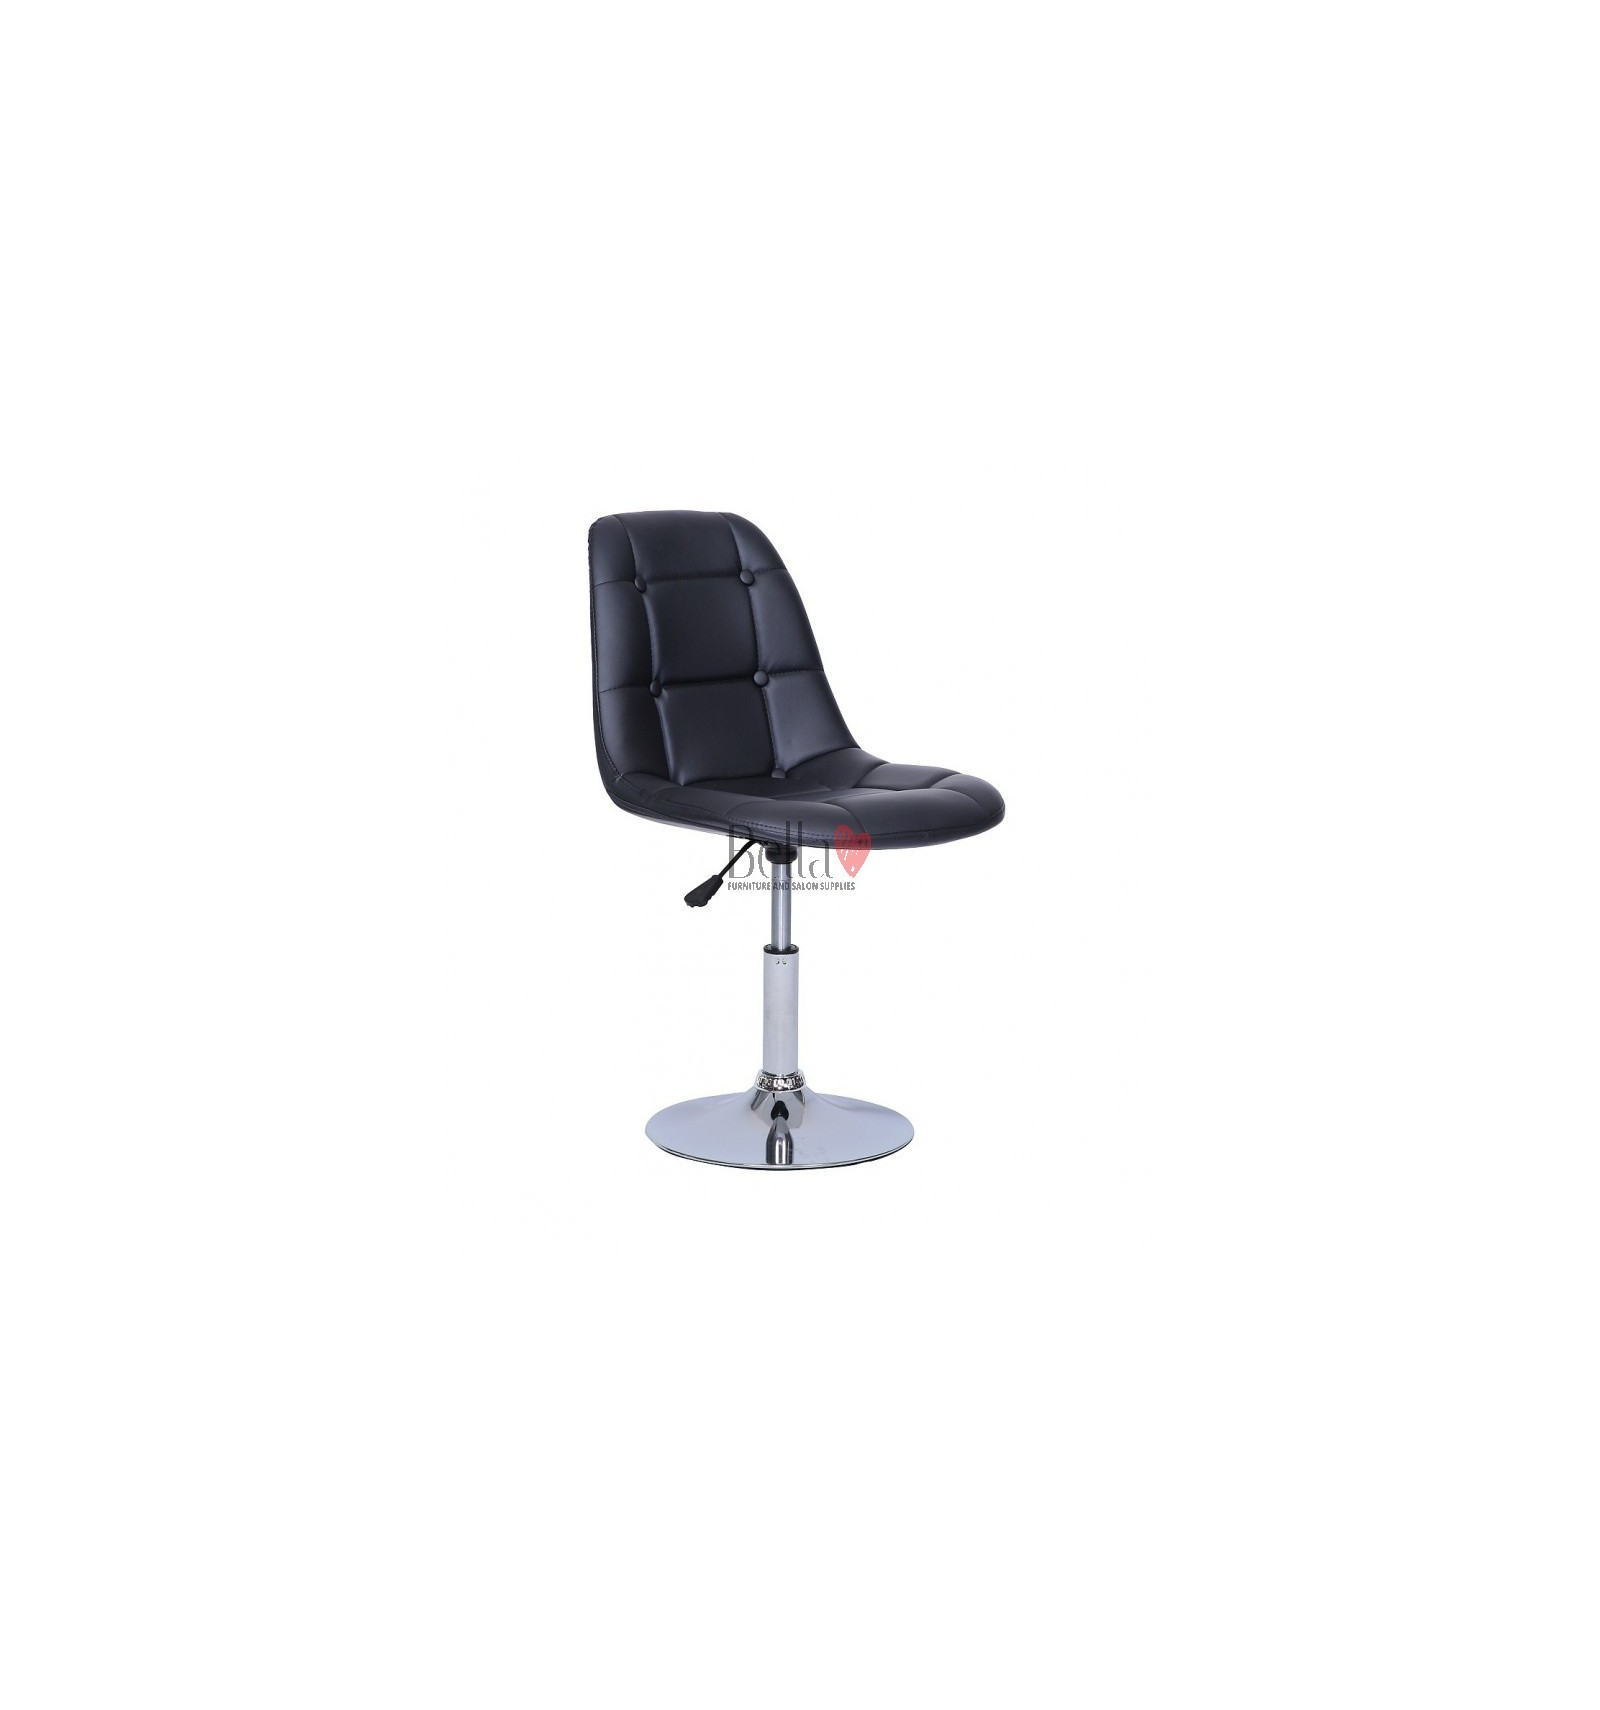 swivel chair ireland backless height stool black chairs for beauty salons beautiful